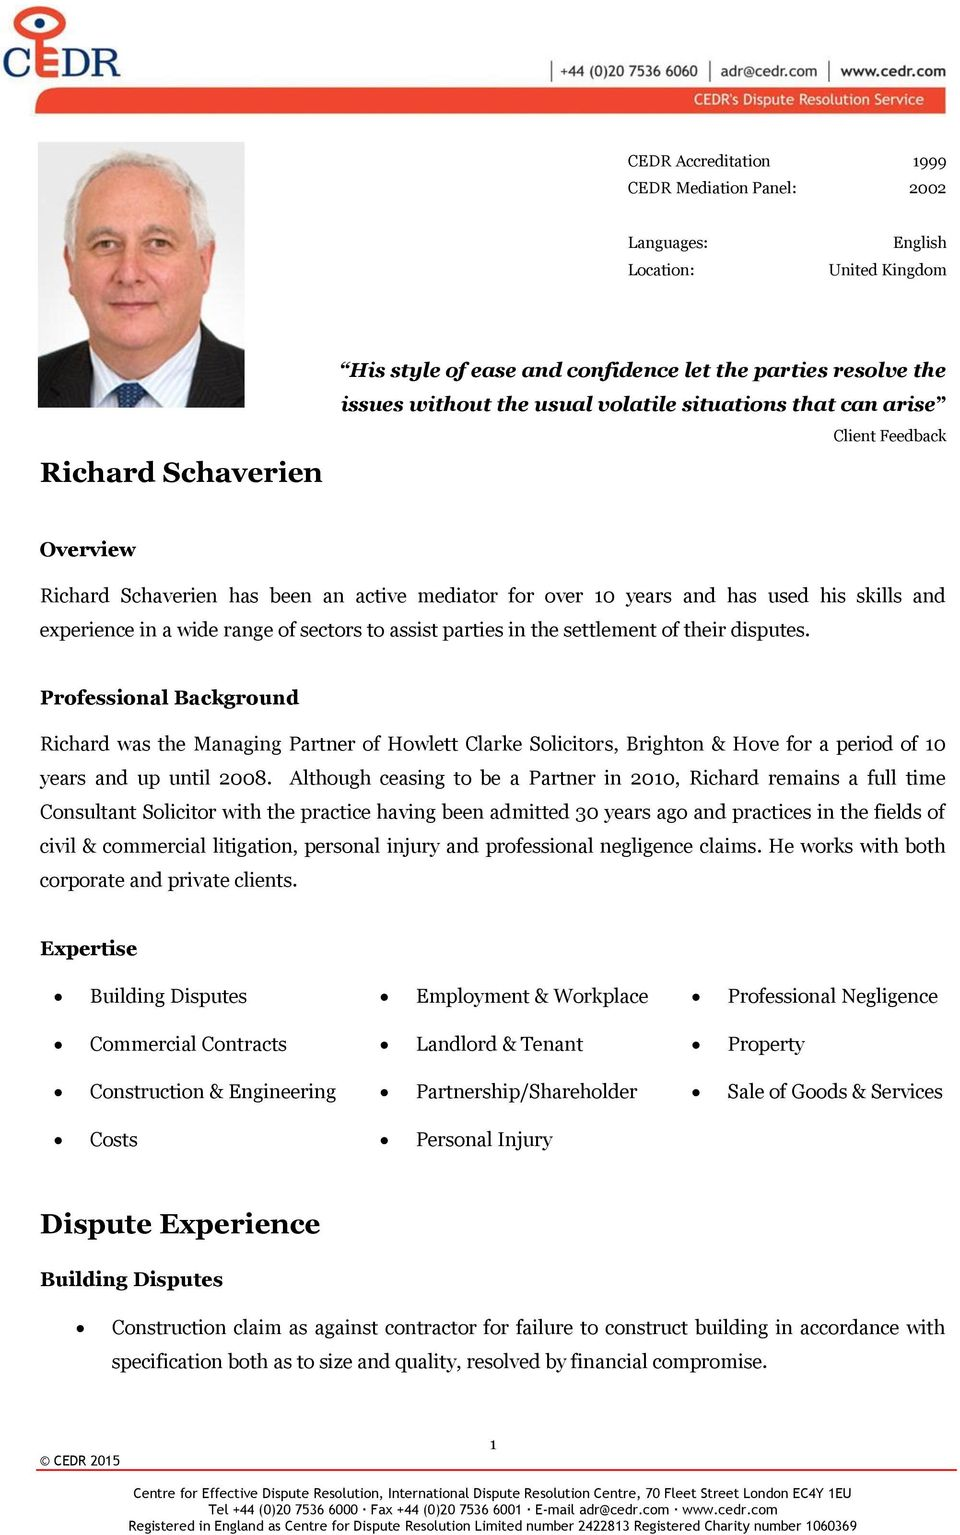 assist parties in the settlement of their disputes. Professional Background Richard was the Managing Partner of Howlett Clarke Solicitors, Brighton & Hove for a period of 10 years and up until 2008.